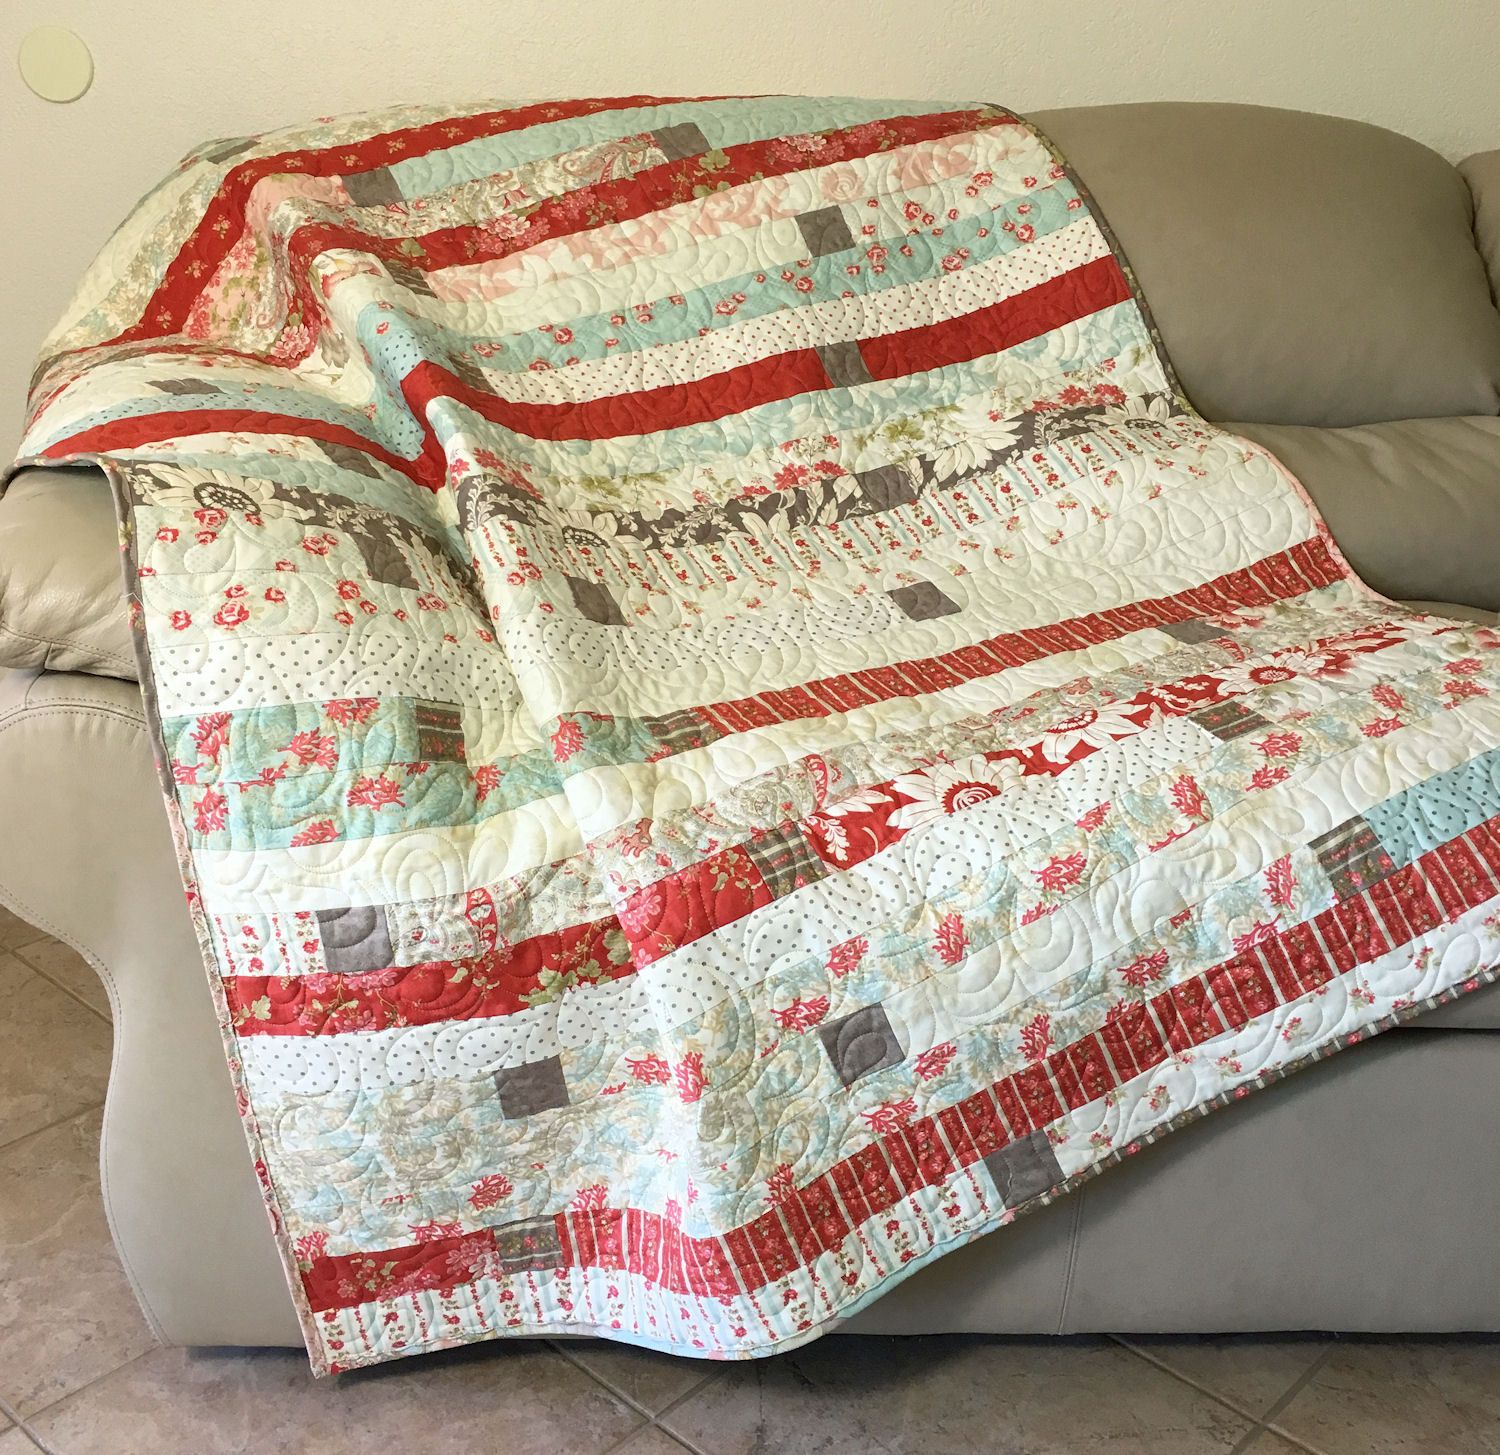 Quilted throw cottage chic lap quilt in coral pink sea glass blue